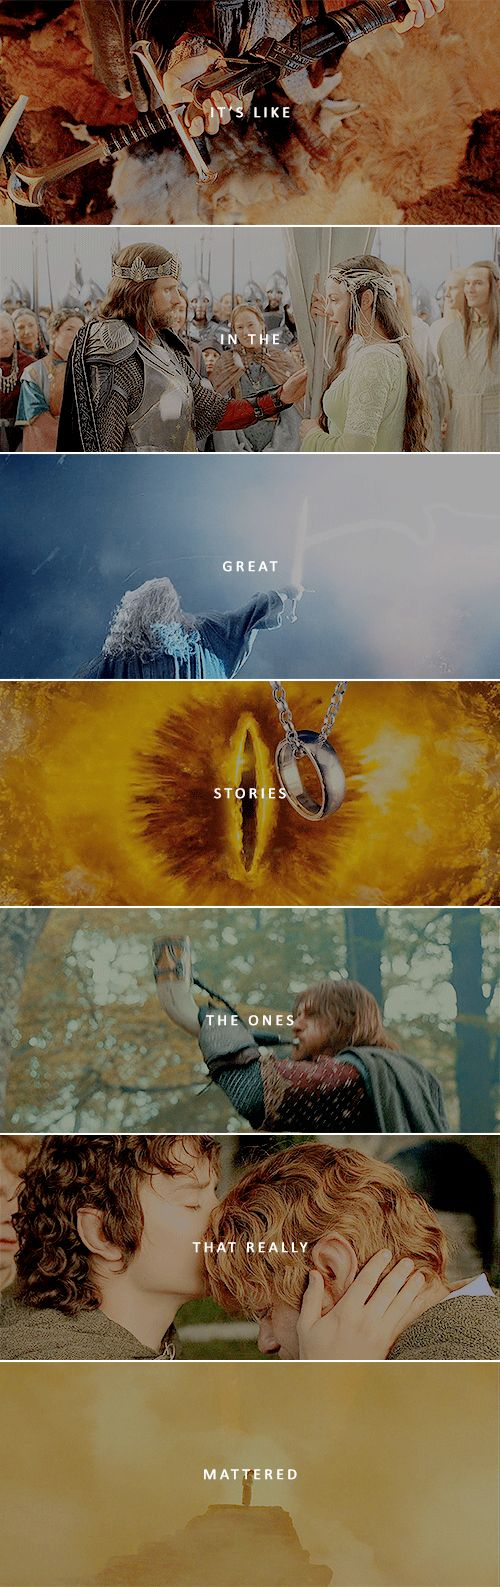 Lord Of The Rings / This Is One Of The Most Epic Stories Of All Time.